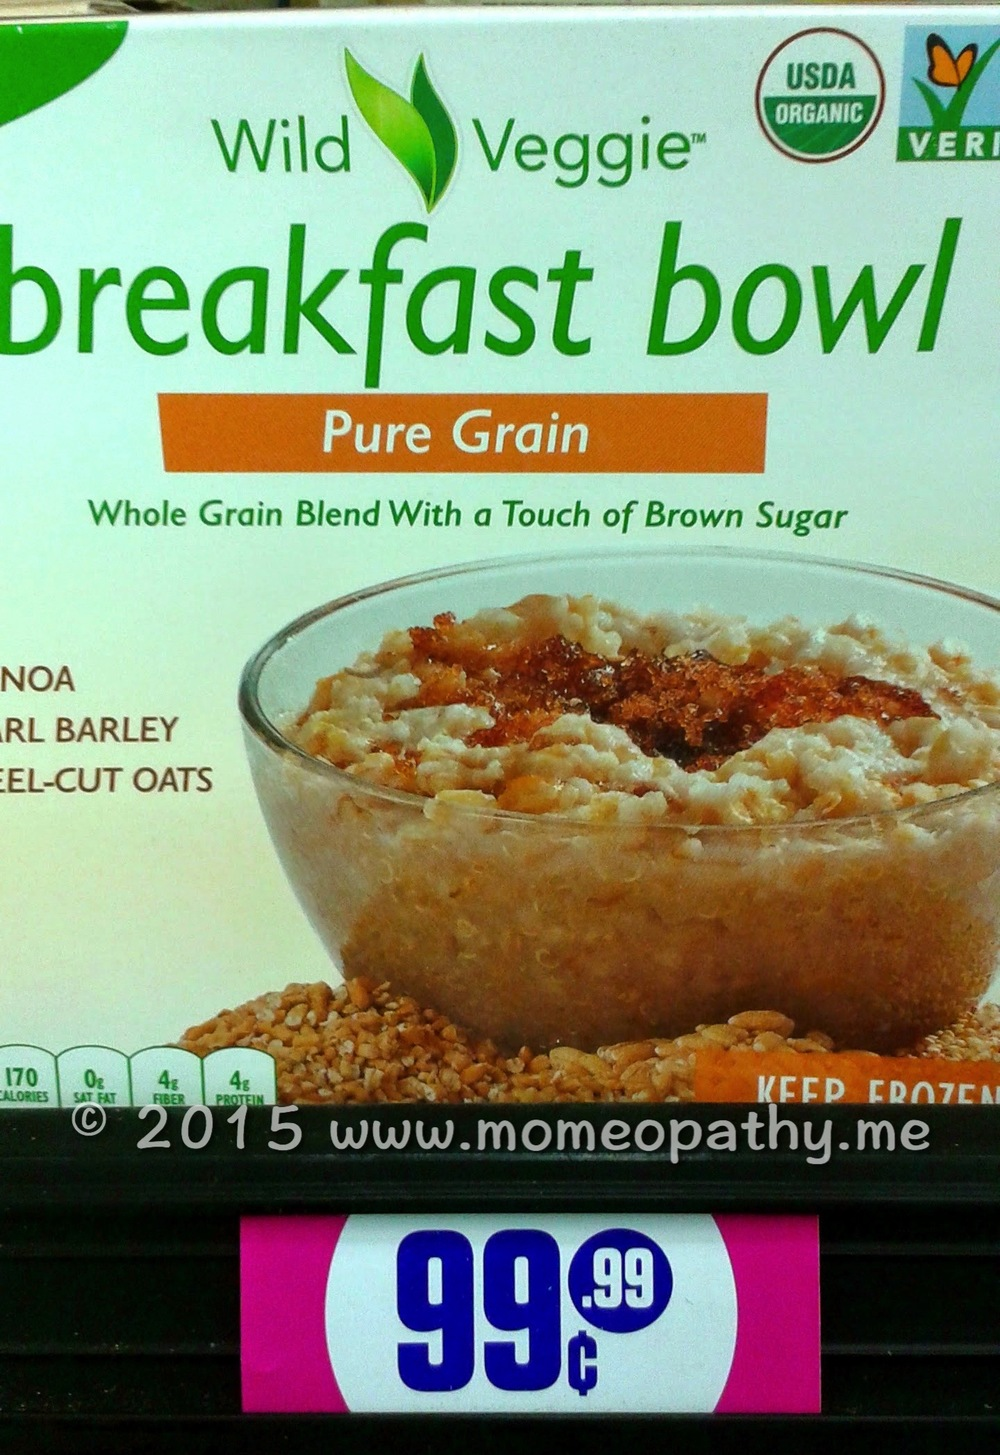 BreakfastbowlPureGrain copy-1.jpg